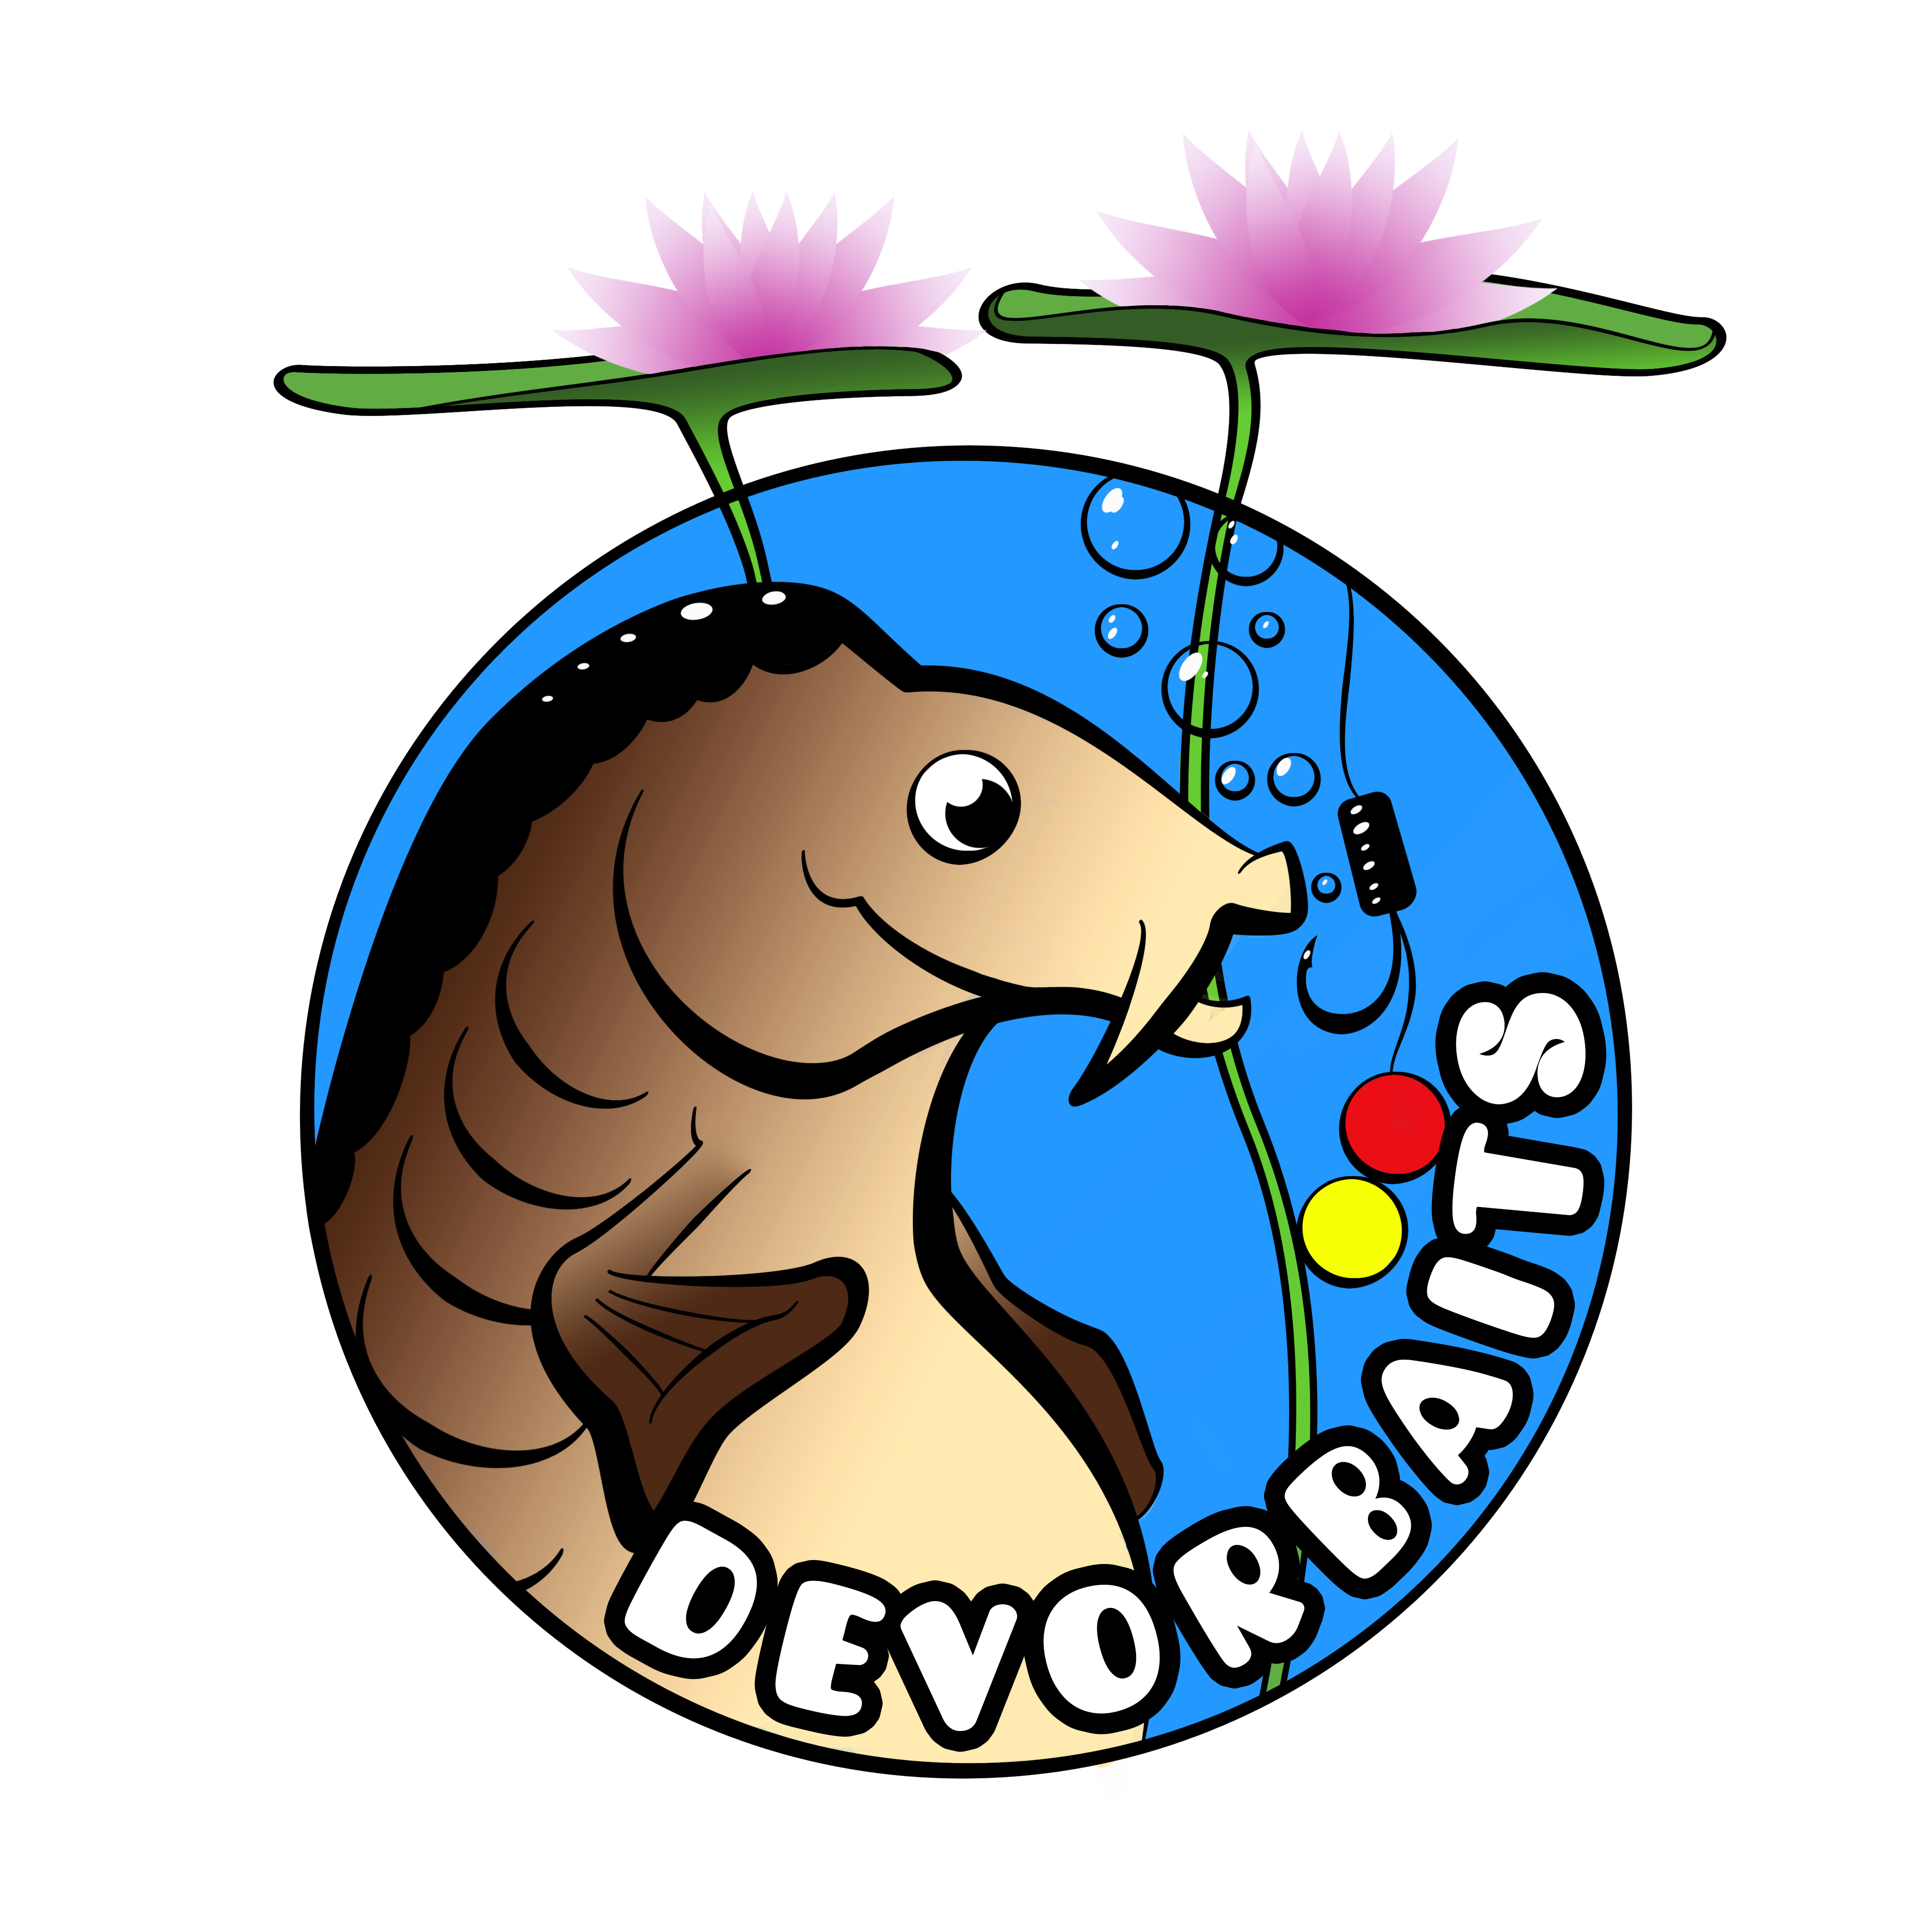 devorbaits